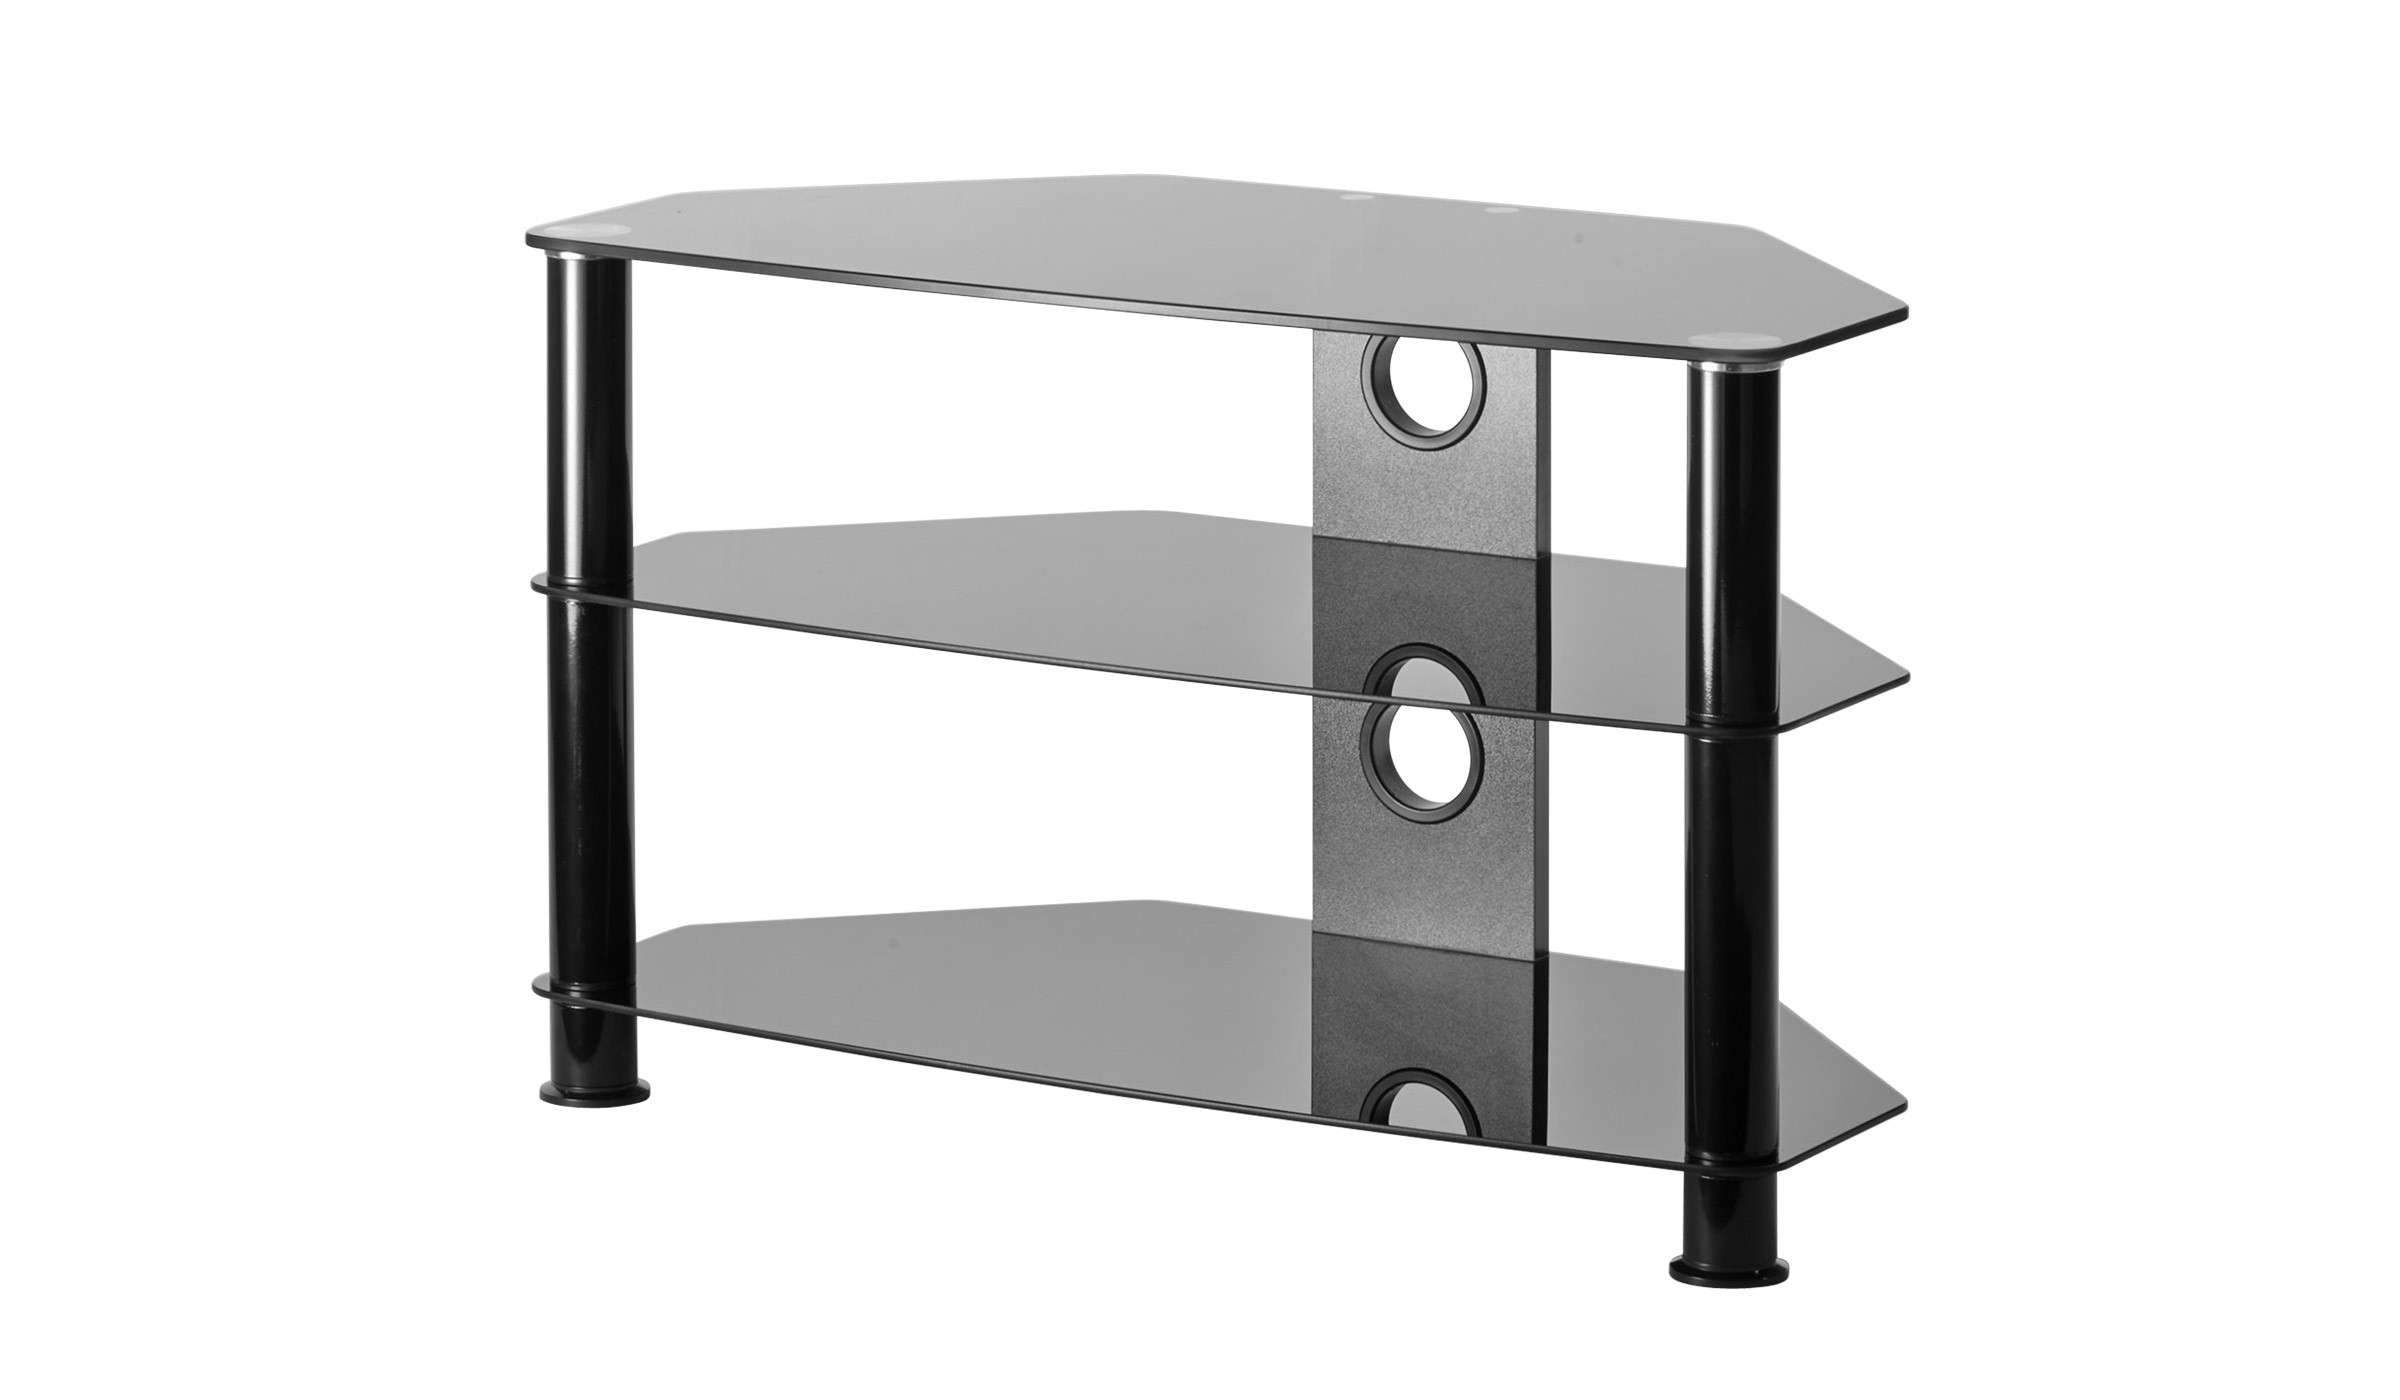 Black Glass Corner Tv Stand Up To 37 Inch Tv | Mmt Db800 Intended For Corner Tv Stands With Bracket (View 4 of 20)